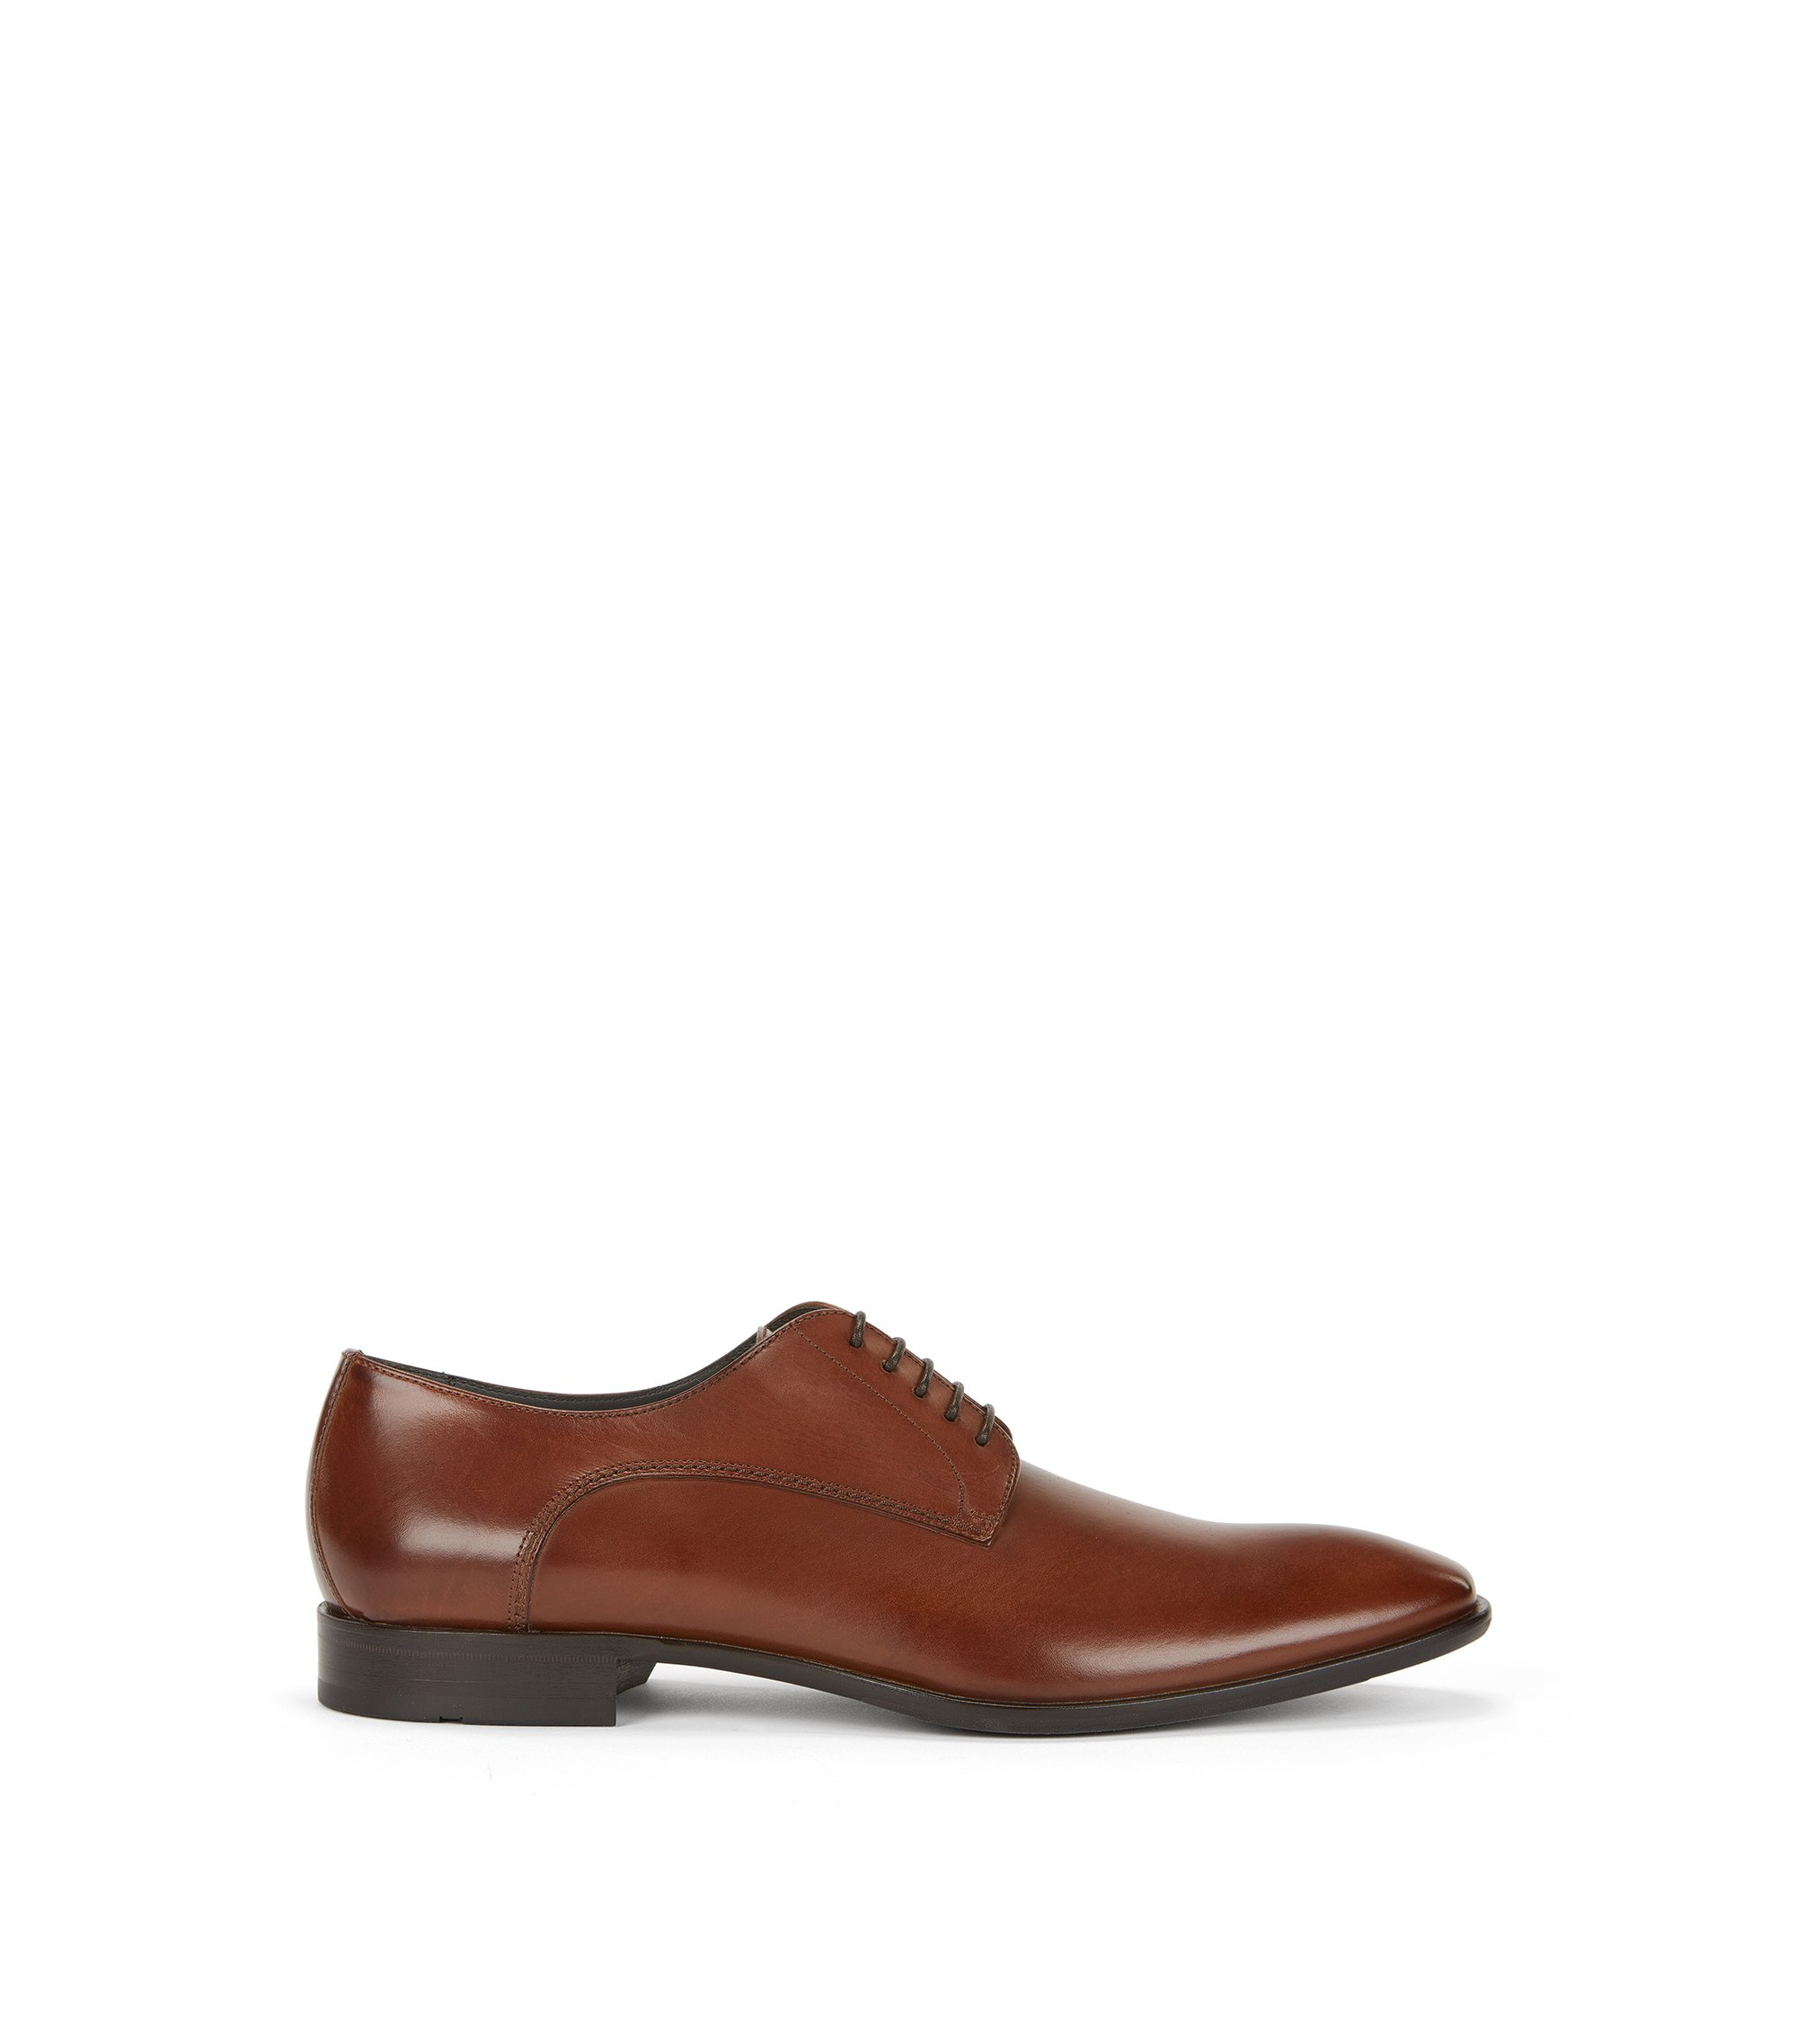 Chaussures Oxford en cuir finition vieillie, Marron